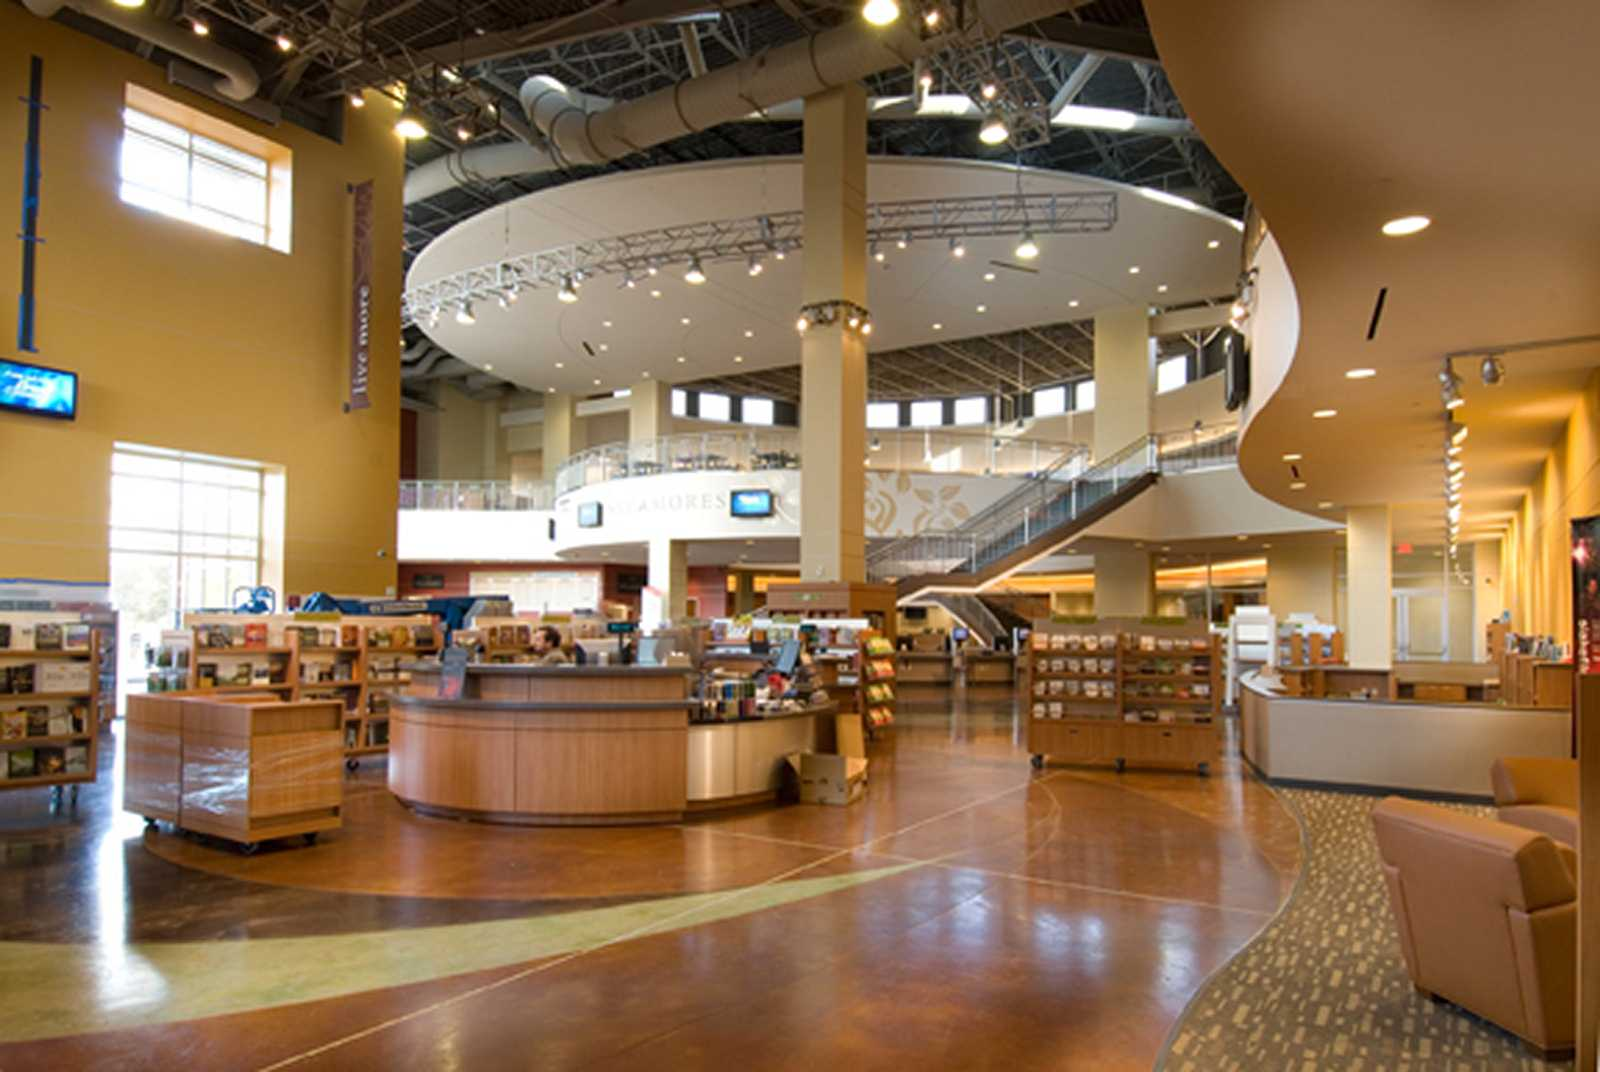 Fellowship Of The Woodlands U2013 Café And Bookstore | Studio RED Architects